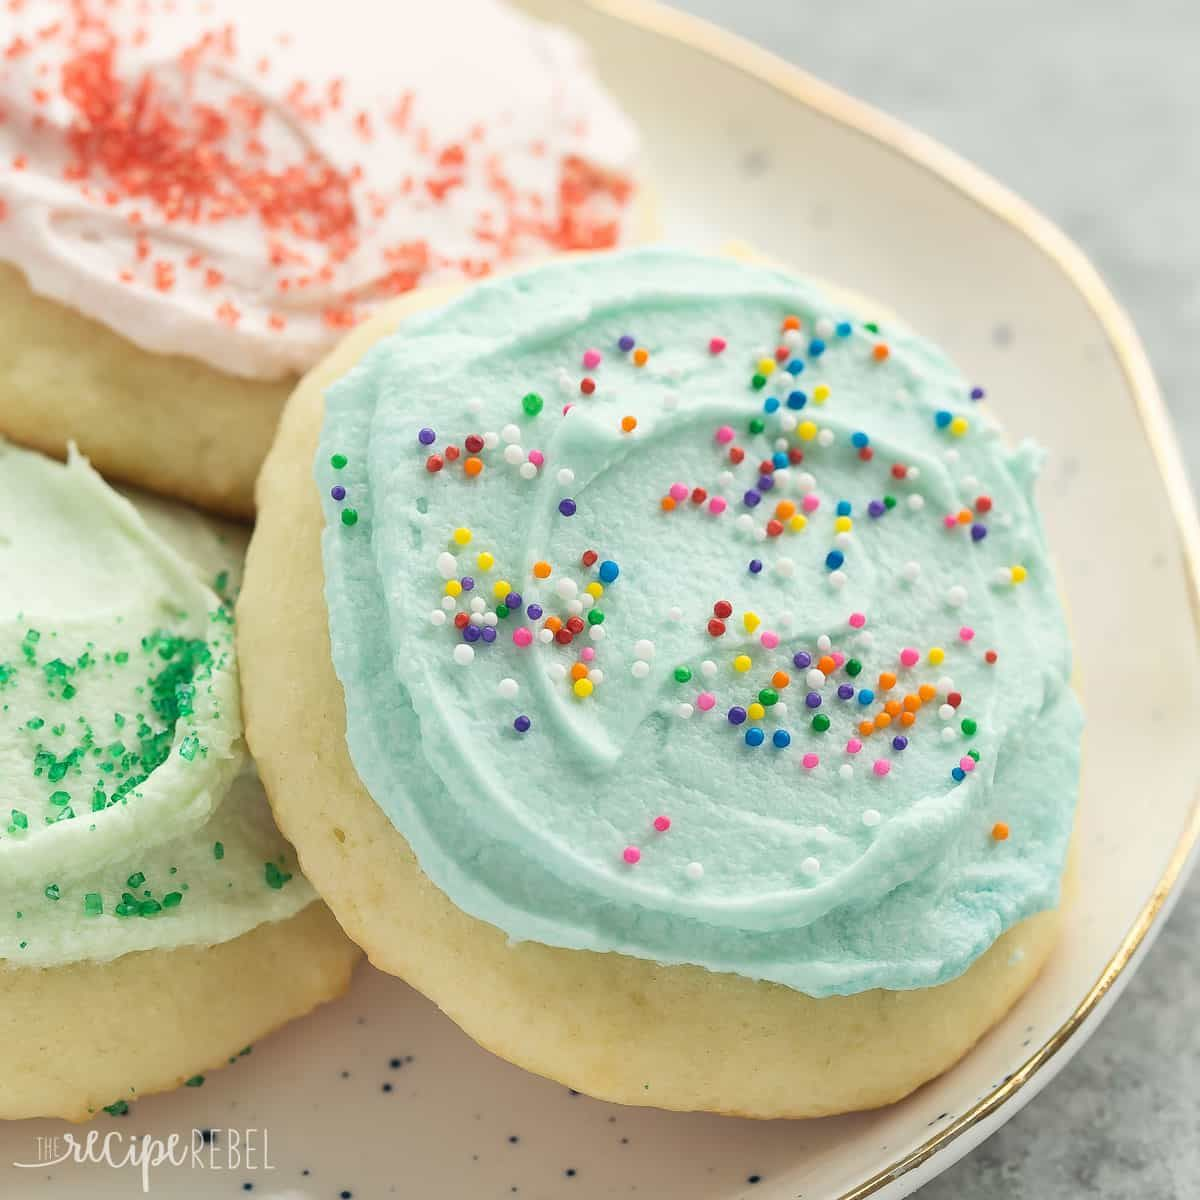 These Sour Cream Sugar Cookies Are Soft And Fluffy With Just The Right Amount Of Sweetness Sour Cream Cookies Sour Cream Sugar Cookies Sugar Cookies Recipe